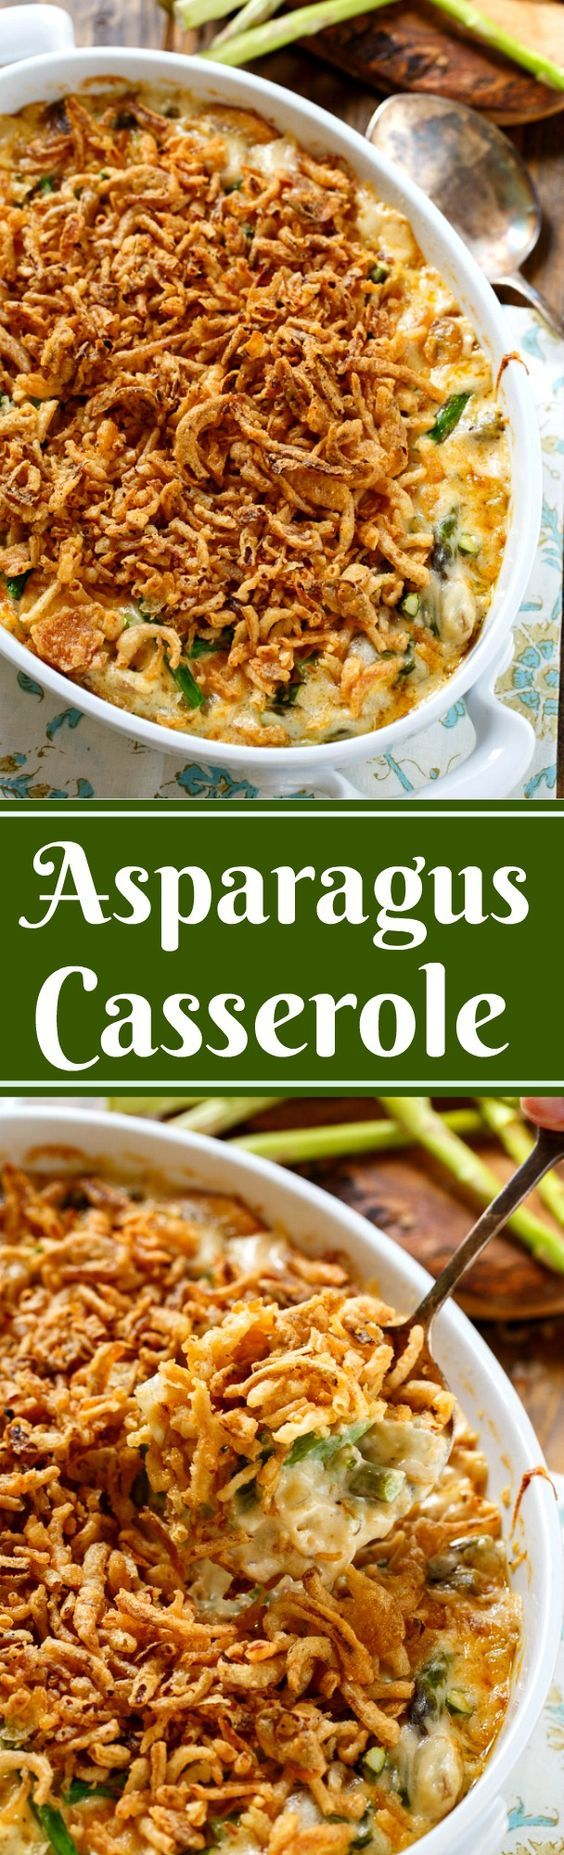 Asparagus Casserole.  Replaced wheat flour with 1/4 cup cassava flour and replaced dairy products with vegan versions.